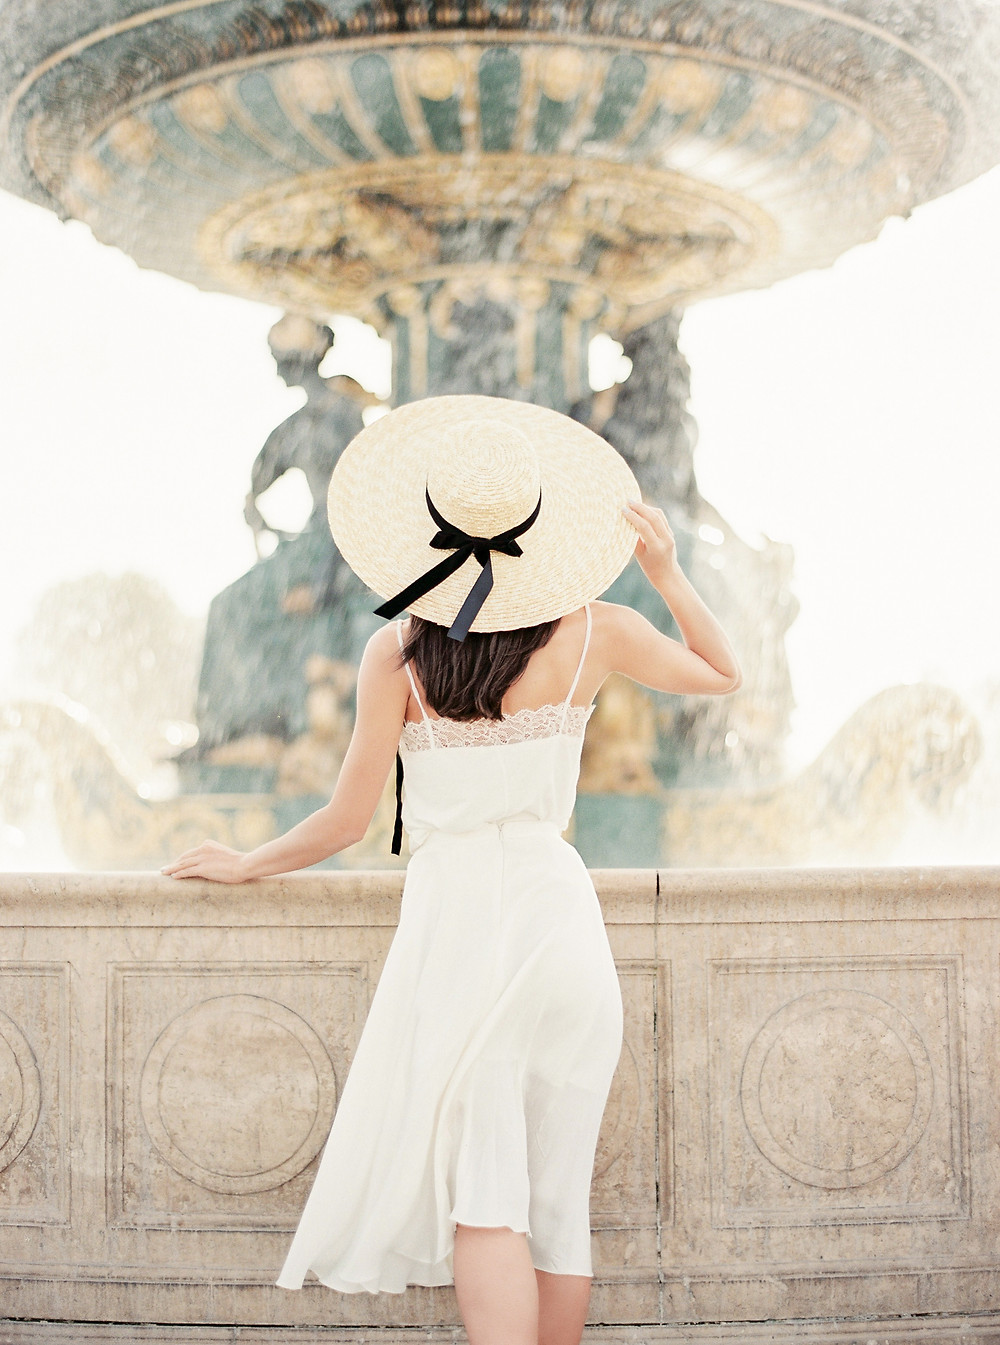 girl in white dress and hat at the fountain in Paris